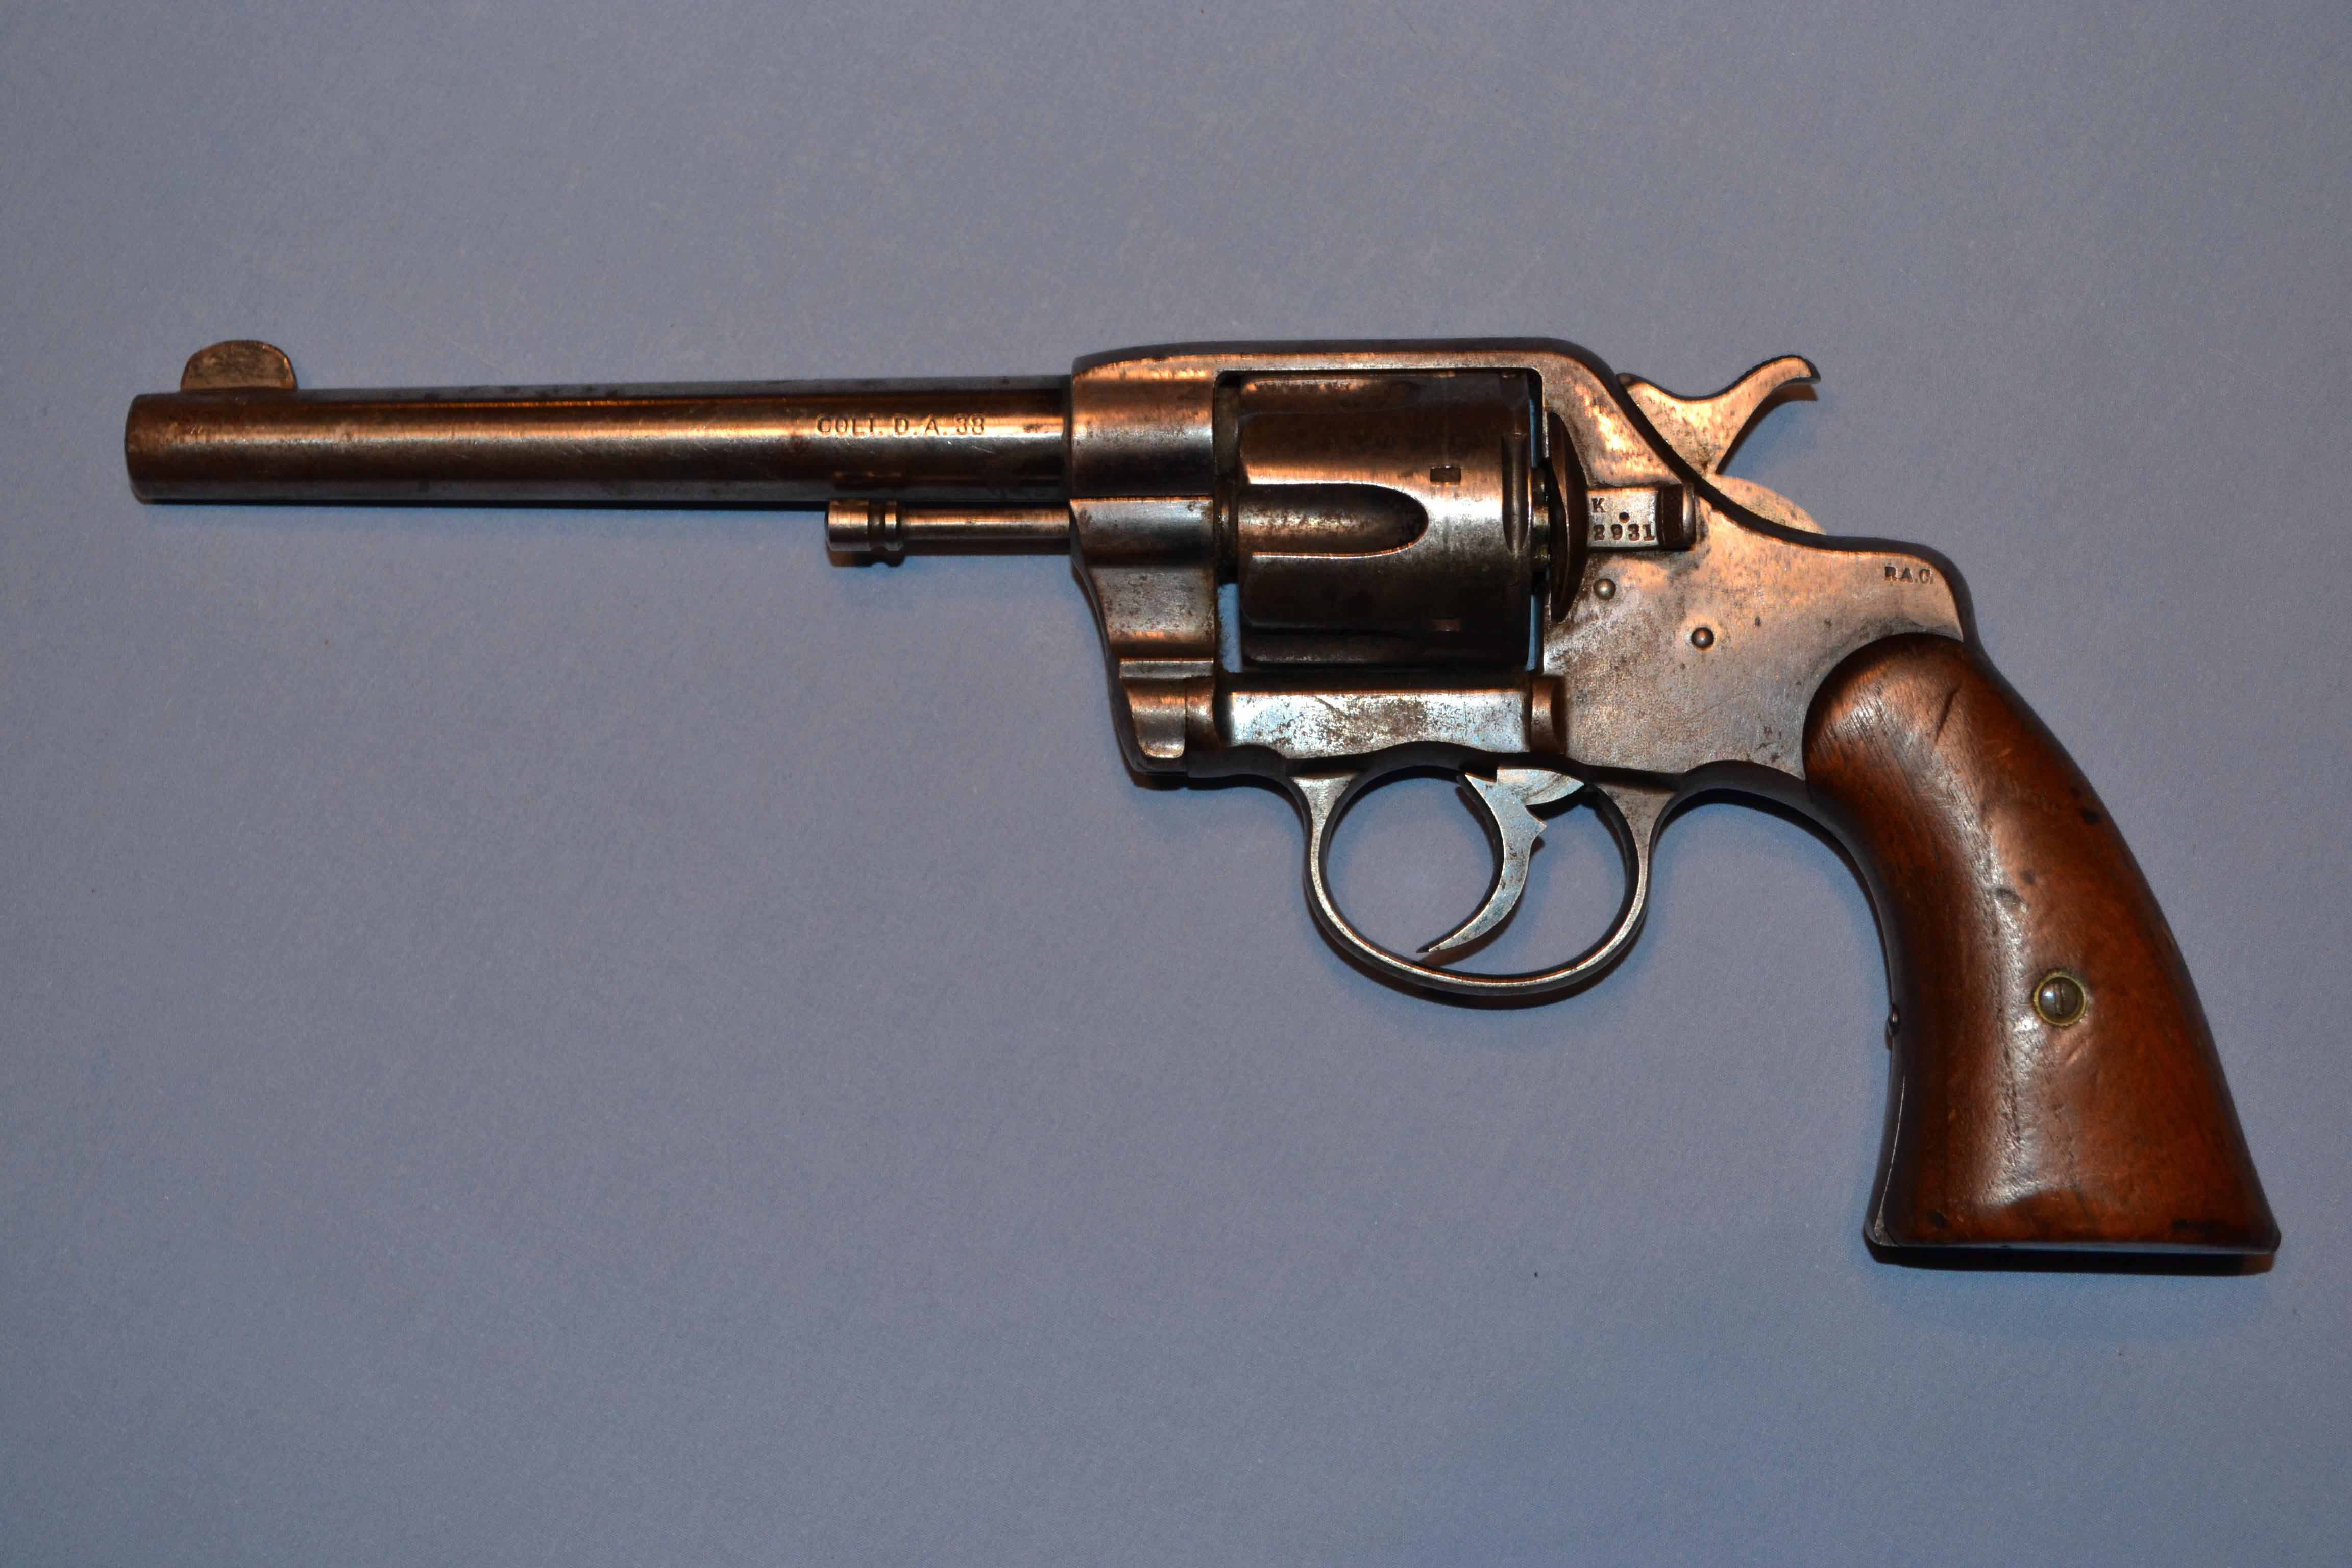 Colt us army model 1903 da revolver 38 sw colt us army model 1903 da revolver 38 sw thecheapjerseys Image collections